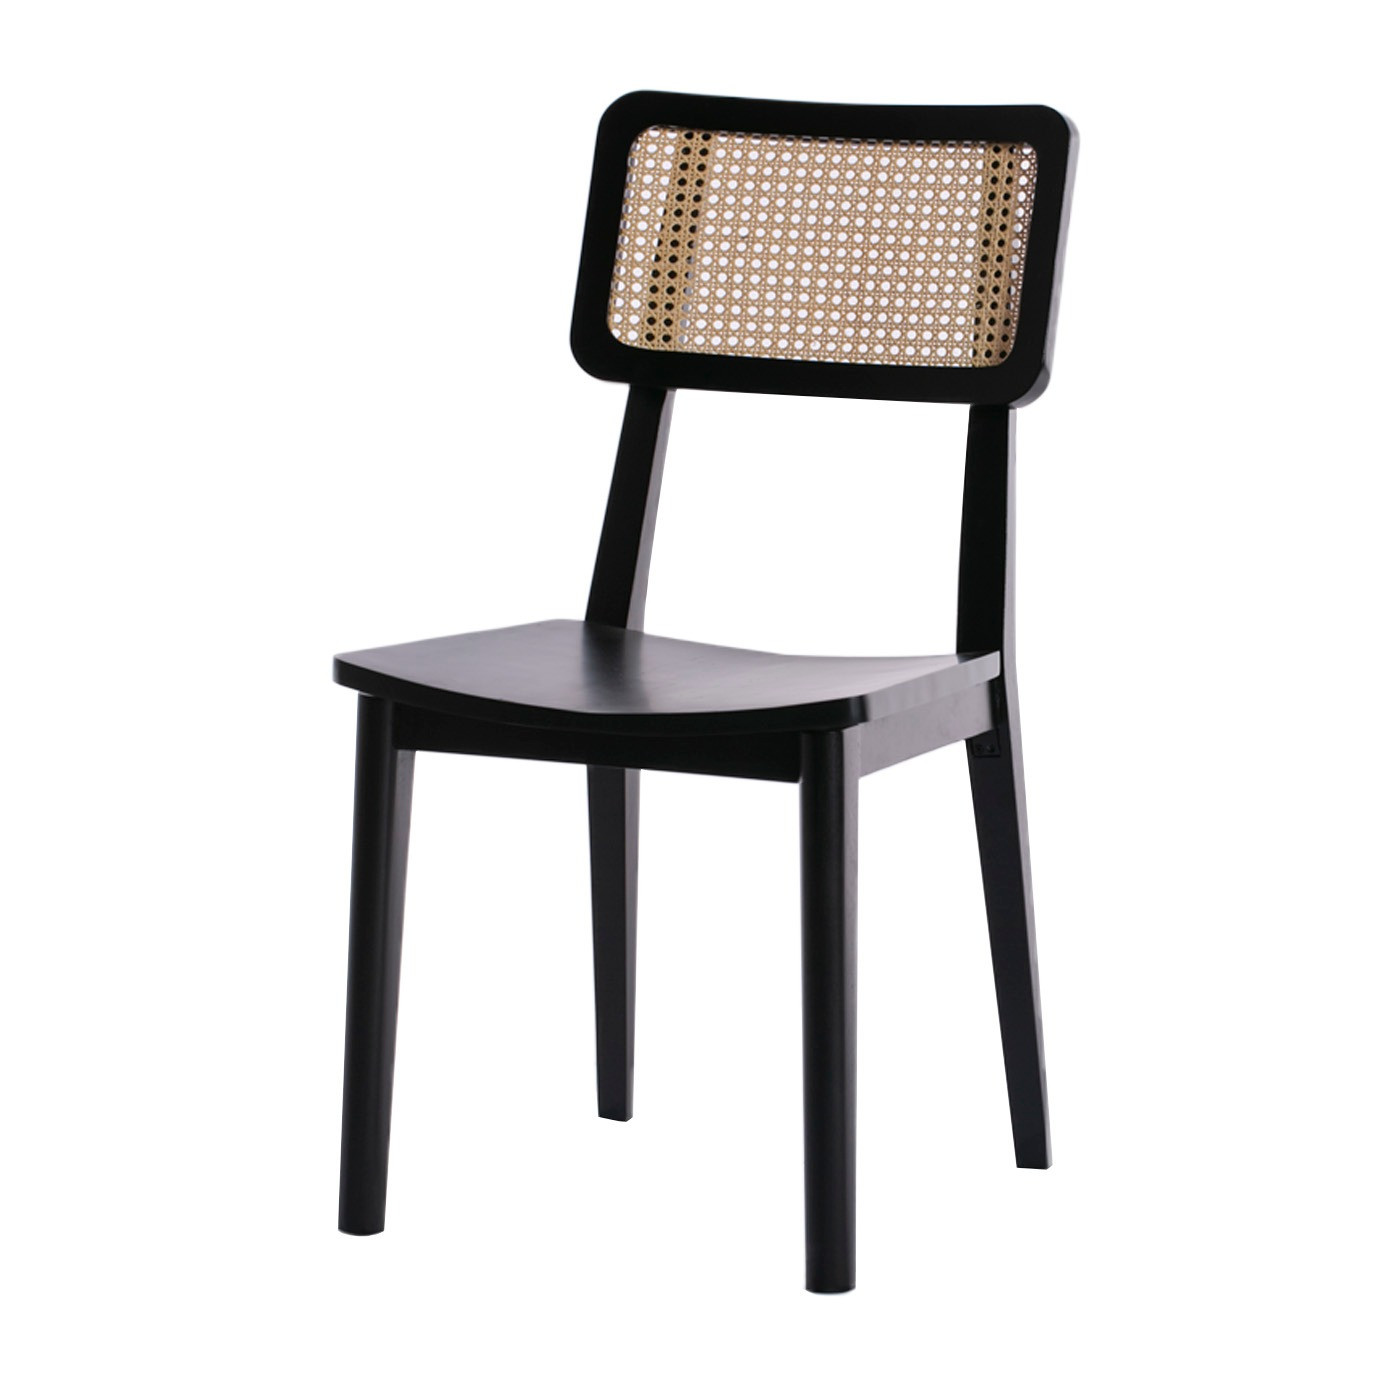 Ratargul Black Chair